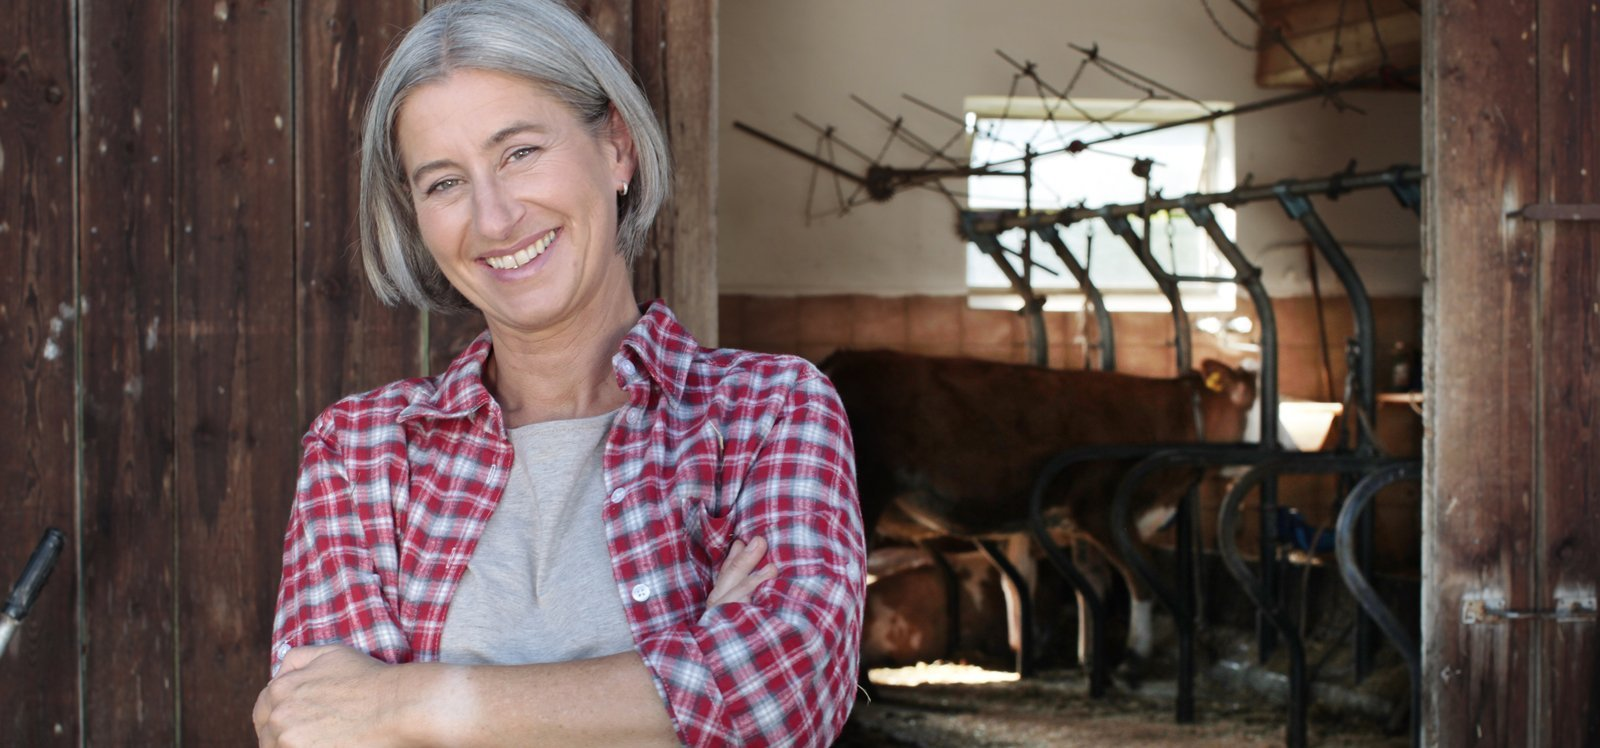 Middle-aged woman standing outside barn